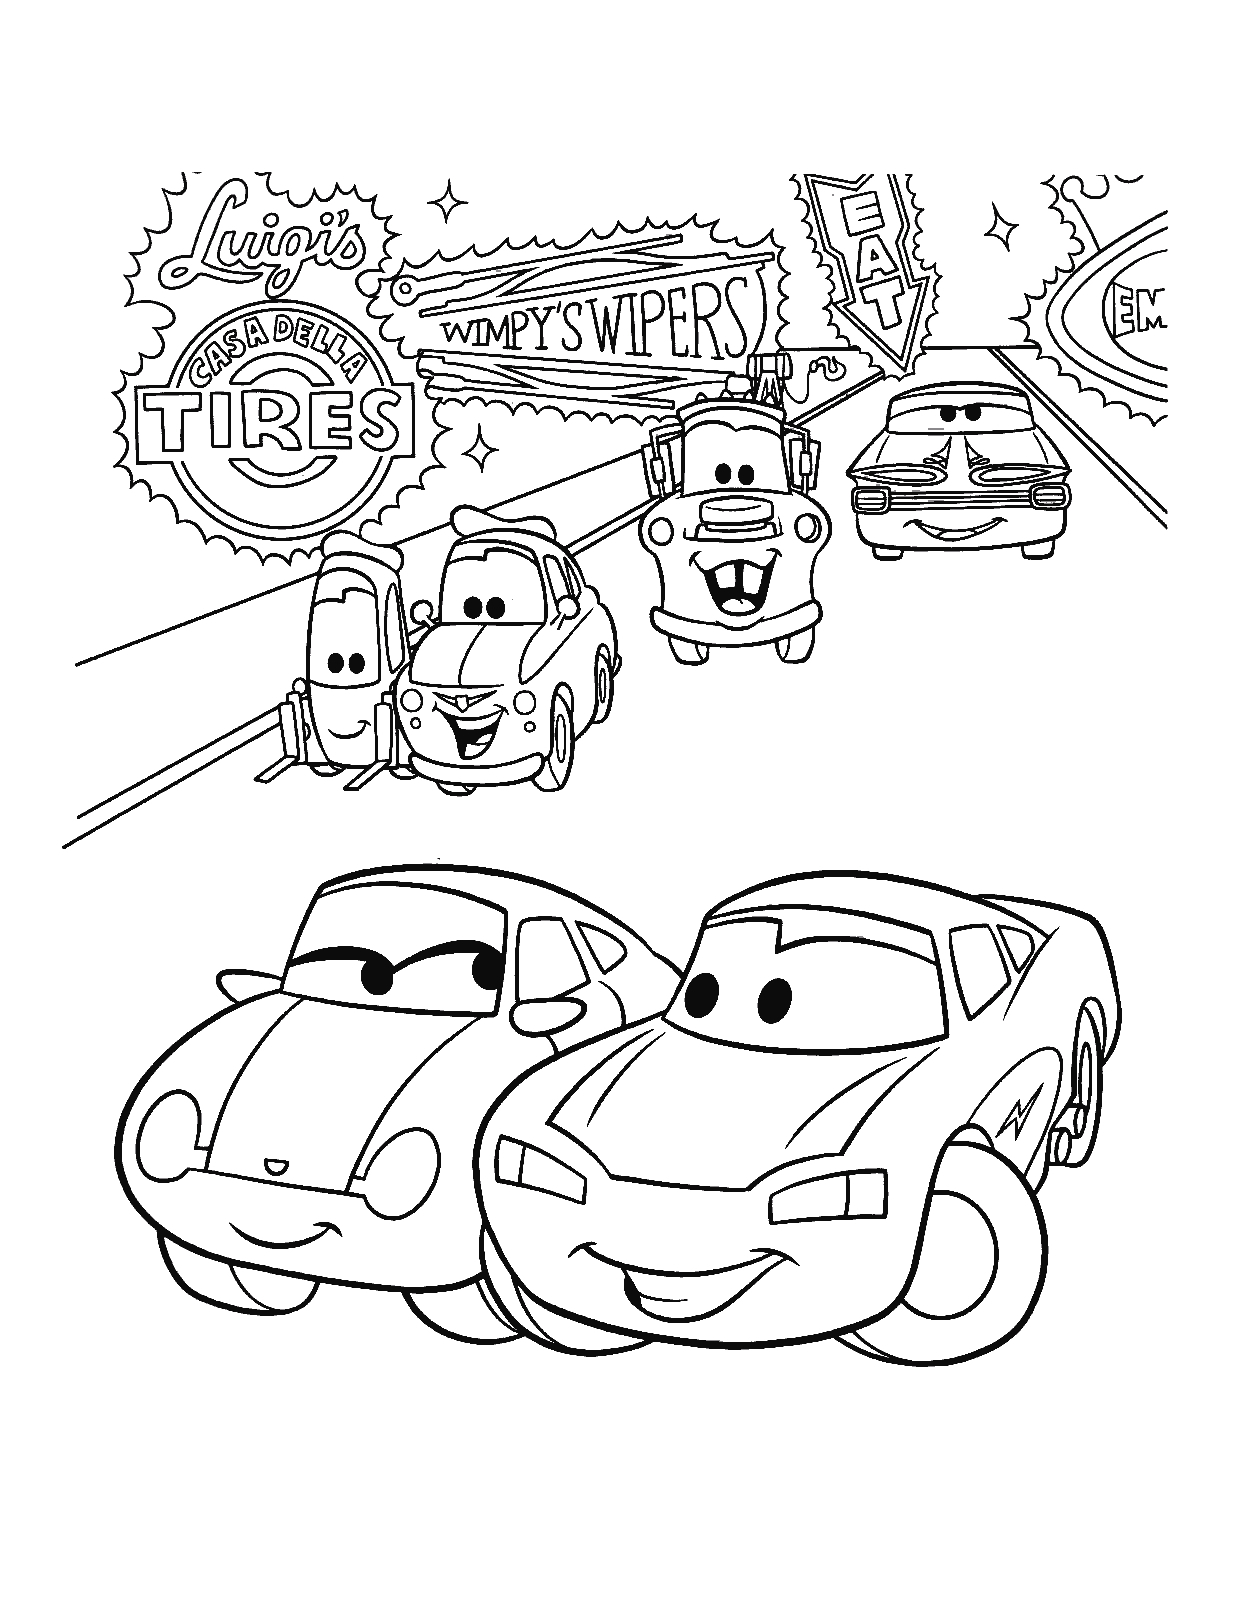 In Cars Coloring Pages From the 2 Disney Movies – Fun Time Gallery Of Car Coloring Pages Disney Cars the Movie to Print Grig3 Download